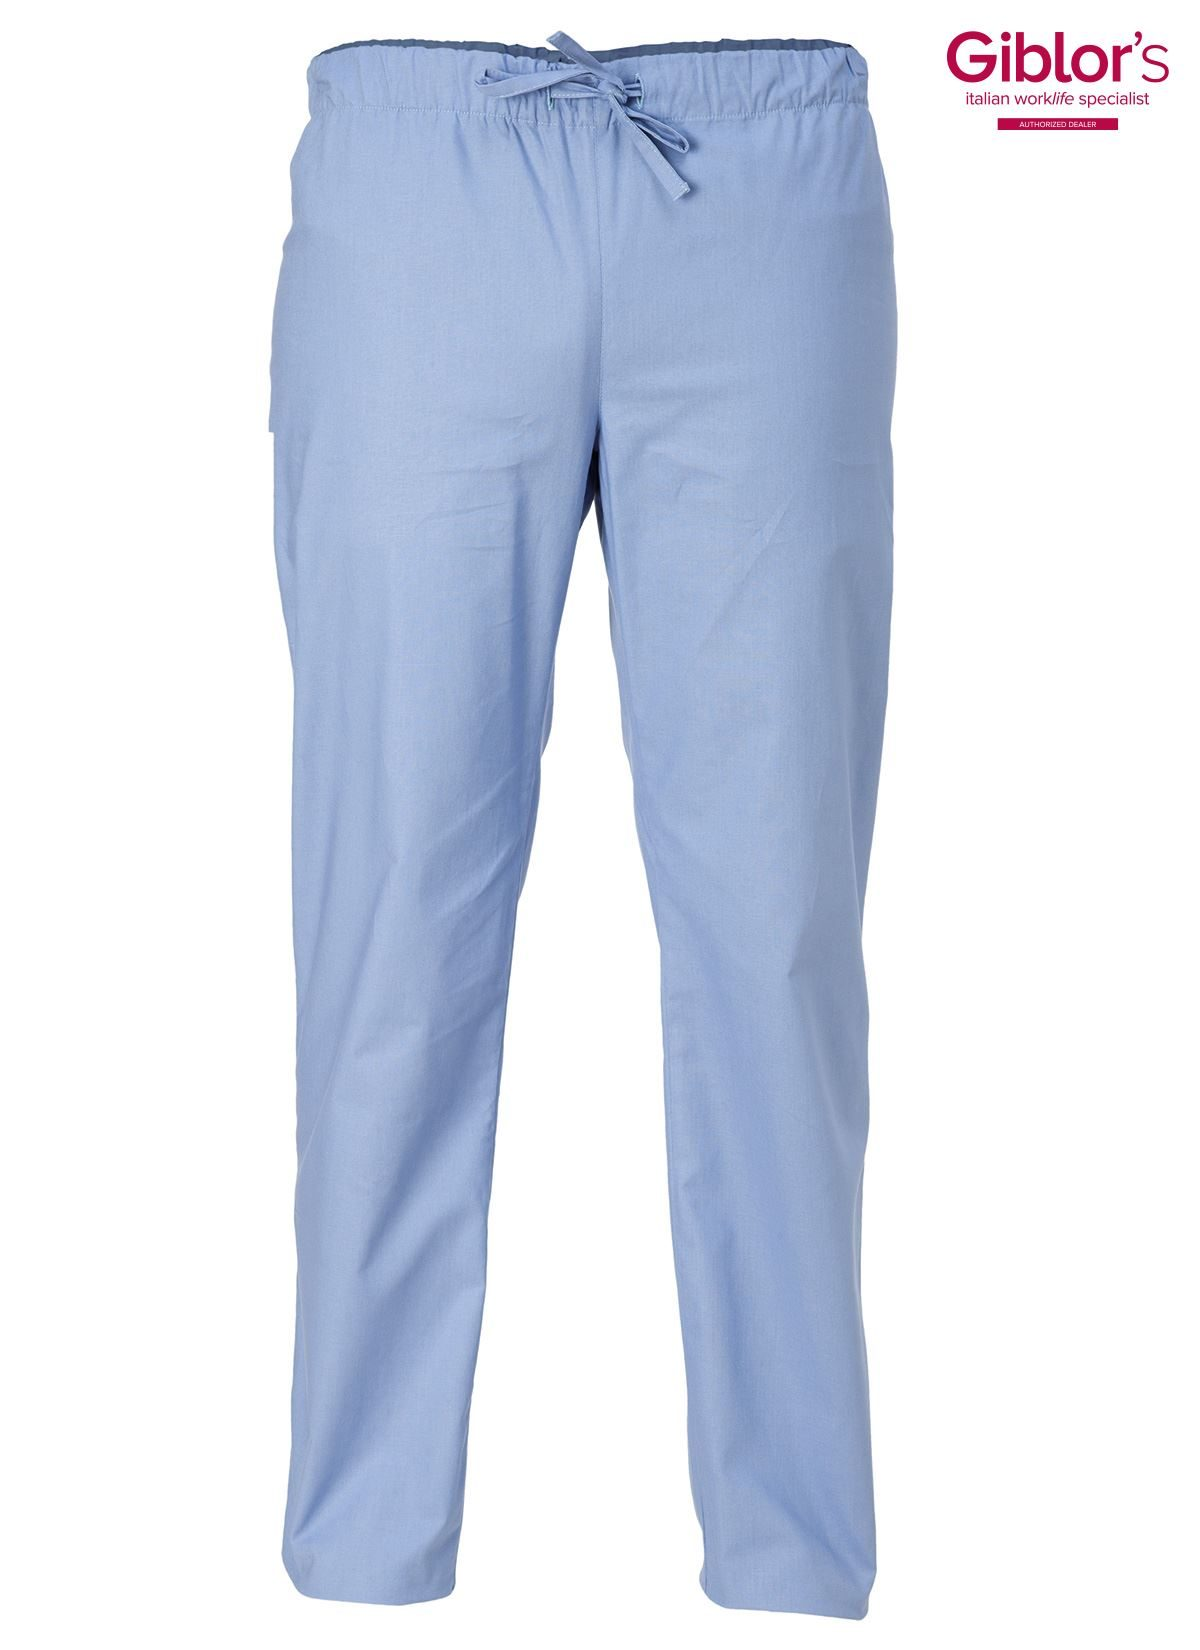 Unisex elasticated scrub trousers with two front pockets and 1 rear pocket